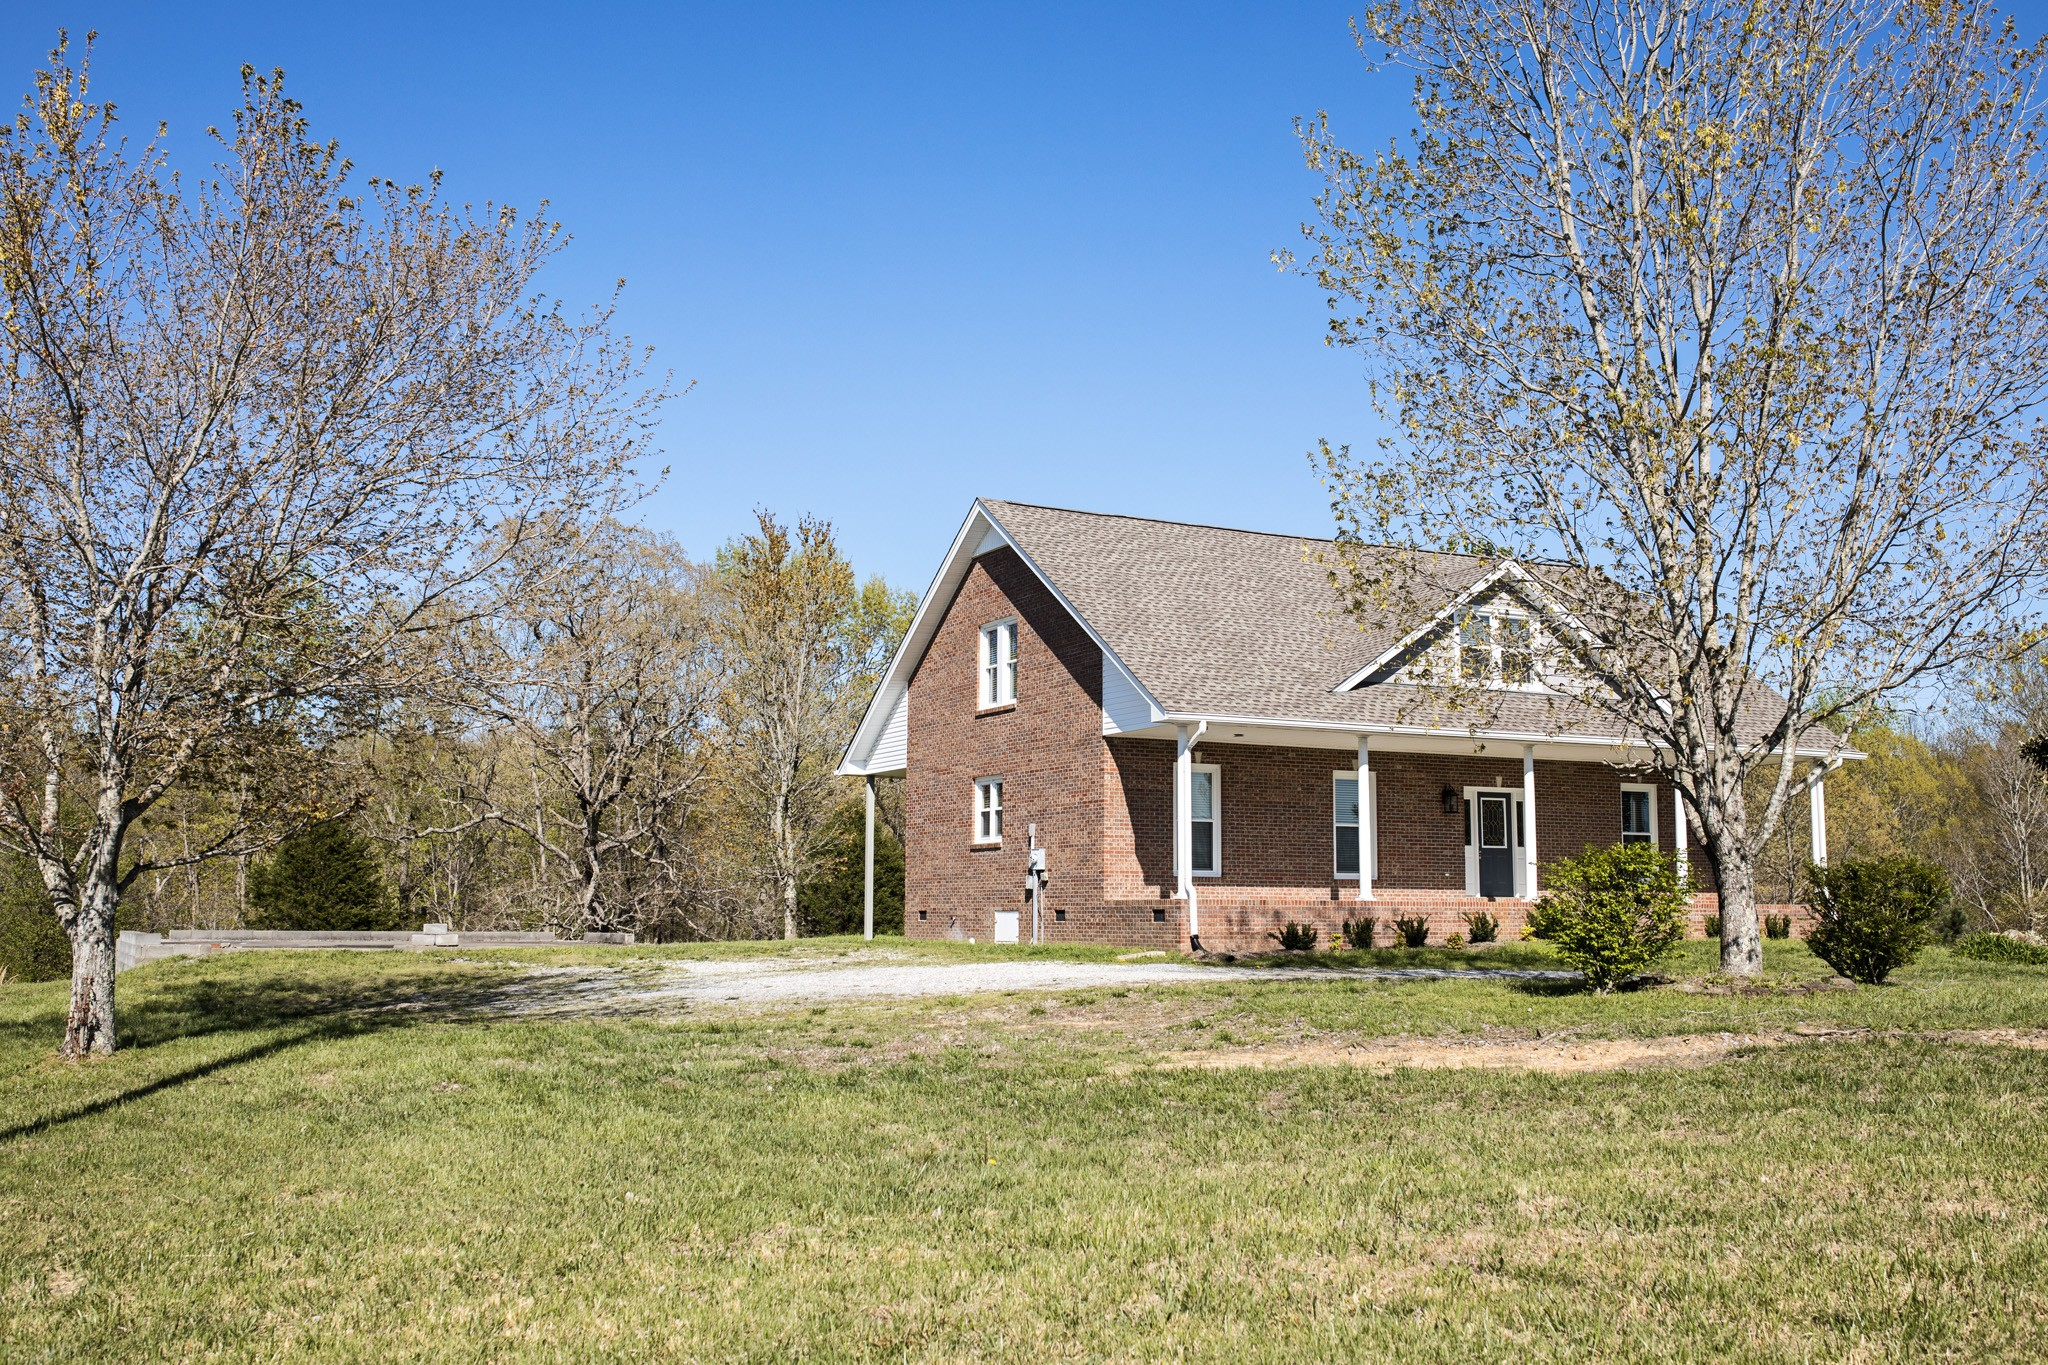 $459,900 - 4Br/3Ba -  for Sale in Na, Greenbrier